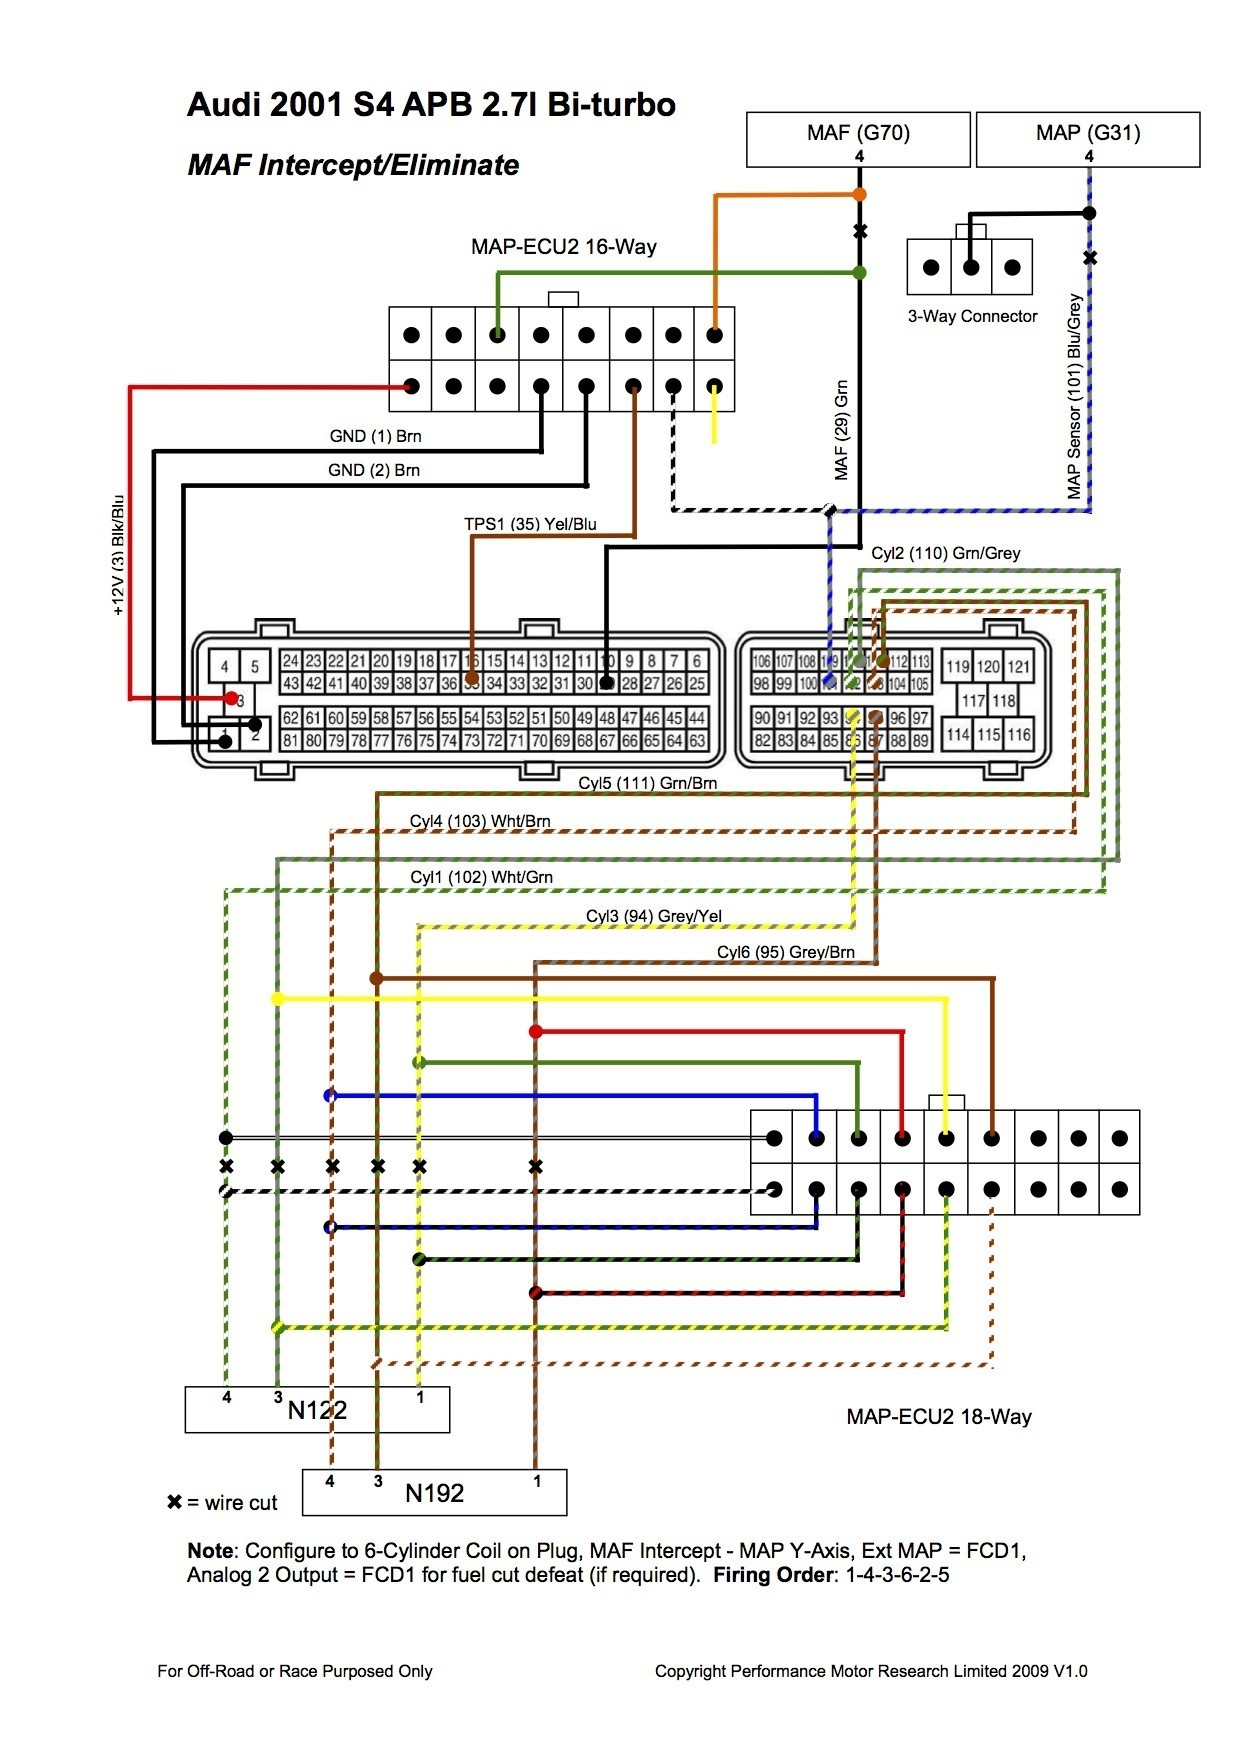 2004 dodge ram 1500 radio wiring diagram | free wiring diagram 1979 xs1100 wiring diagram free picture schematic 2004 dodge wiring diagram free picture schematic